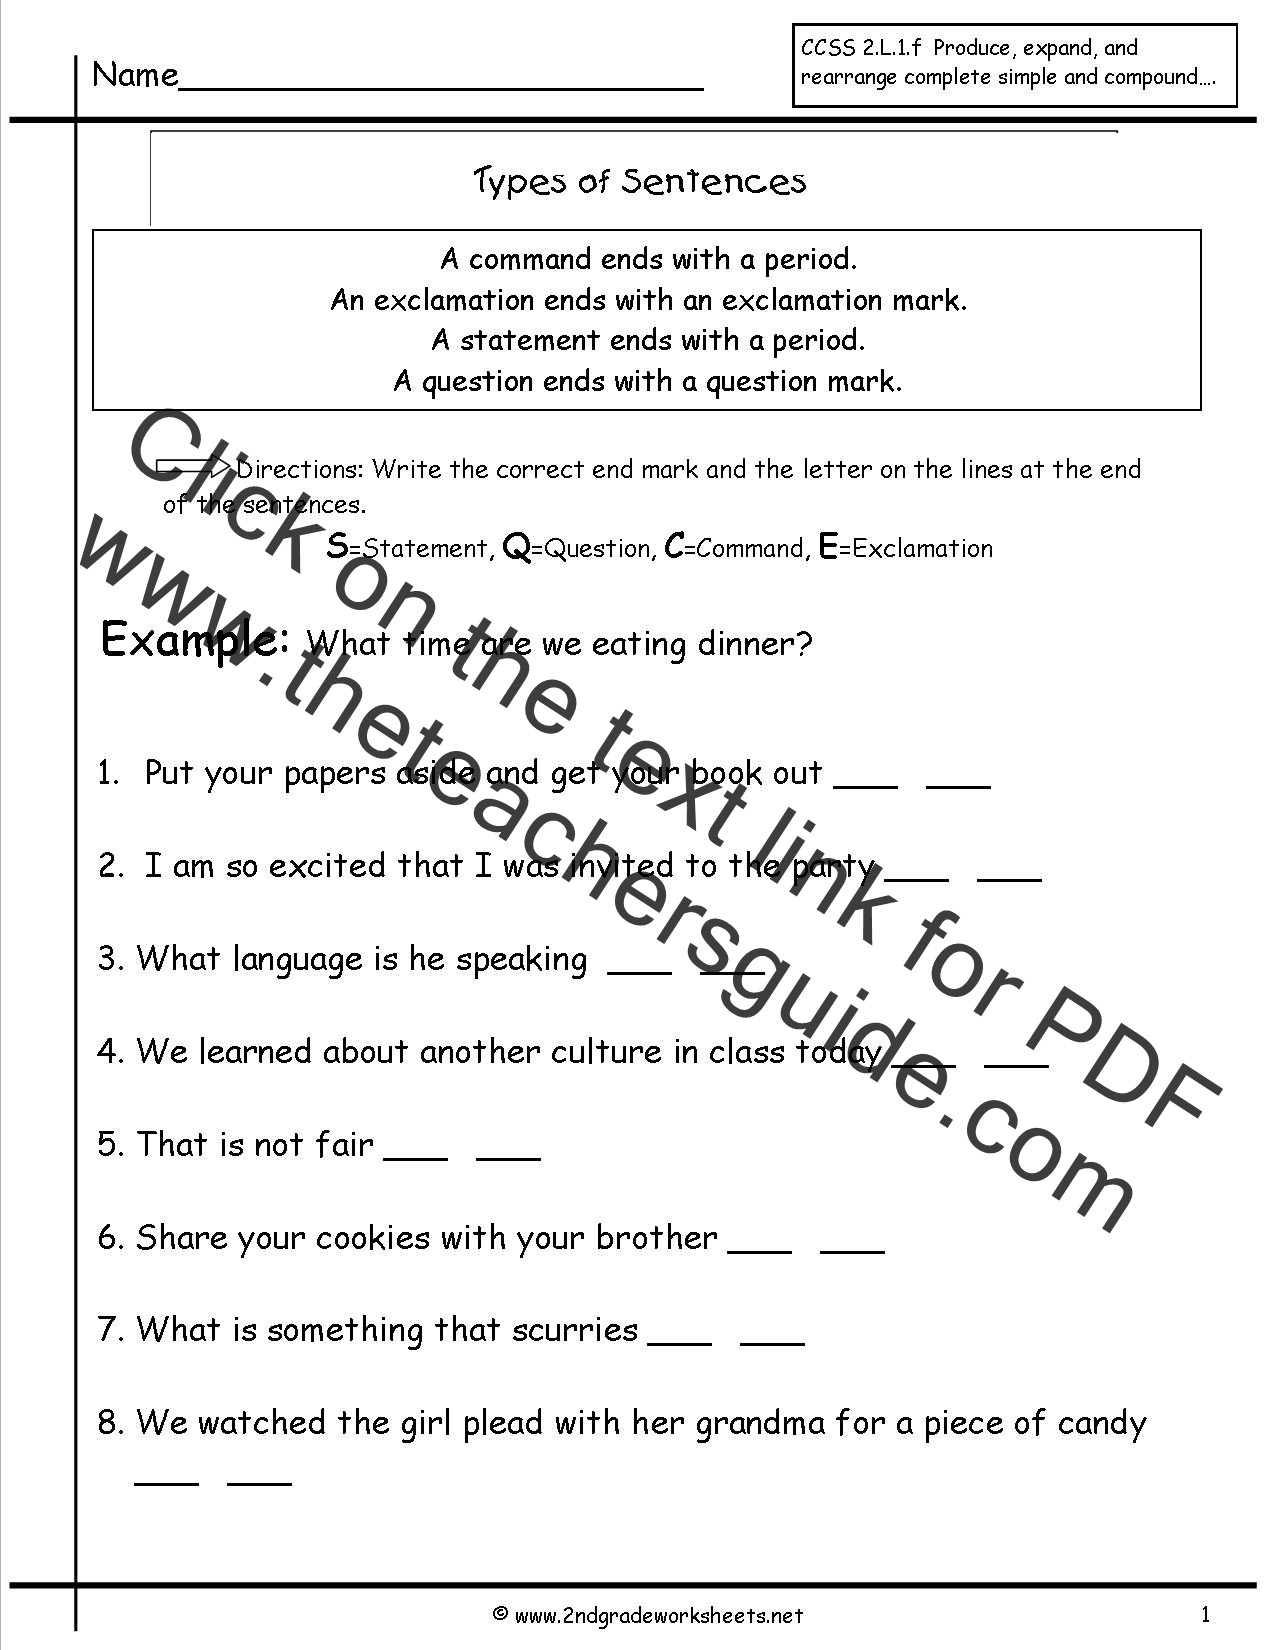 Combining Sentences Worksheets 5th Grade Kinds Sentences Worksheet for 2nd Grade